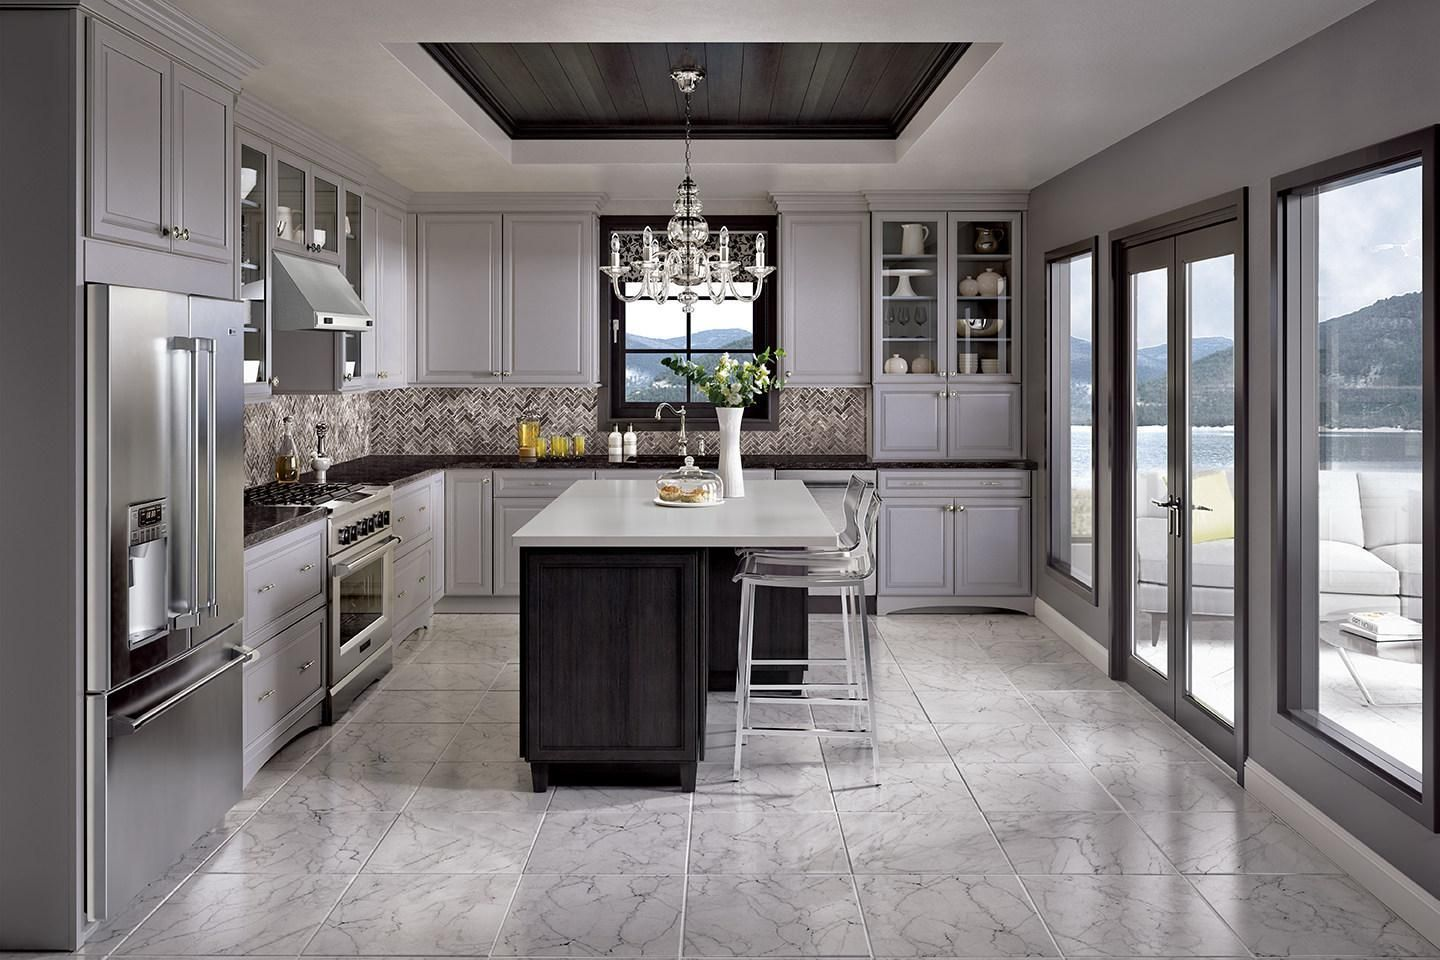 Pin By Anthony Bronzovich On Kitchen Remodeling Projects Kitchen Remodel Kitchen Design Inset Cabinets